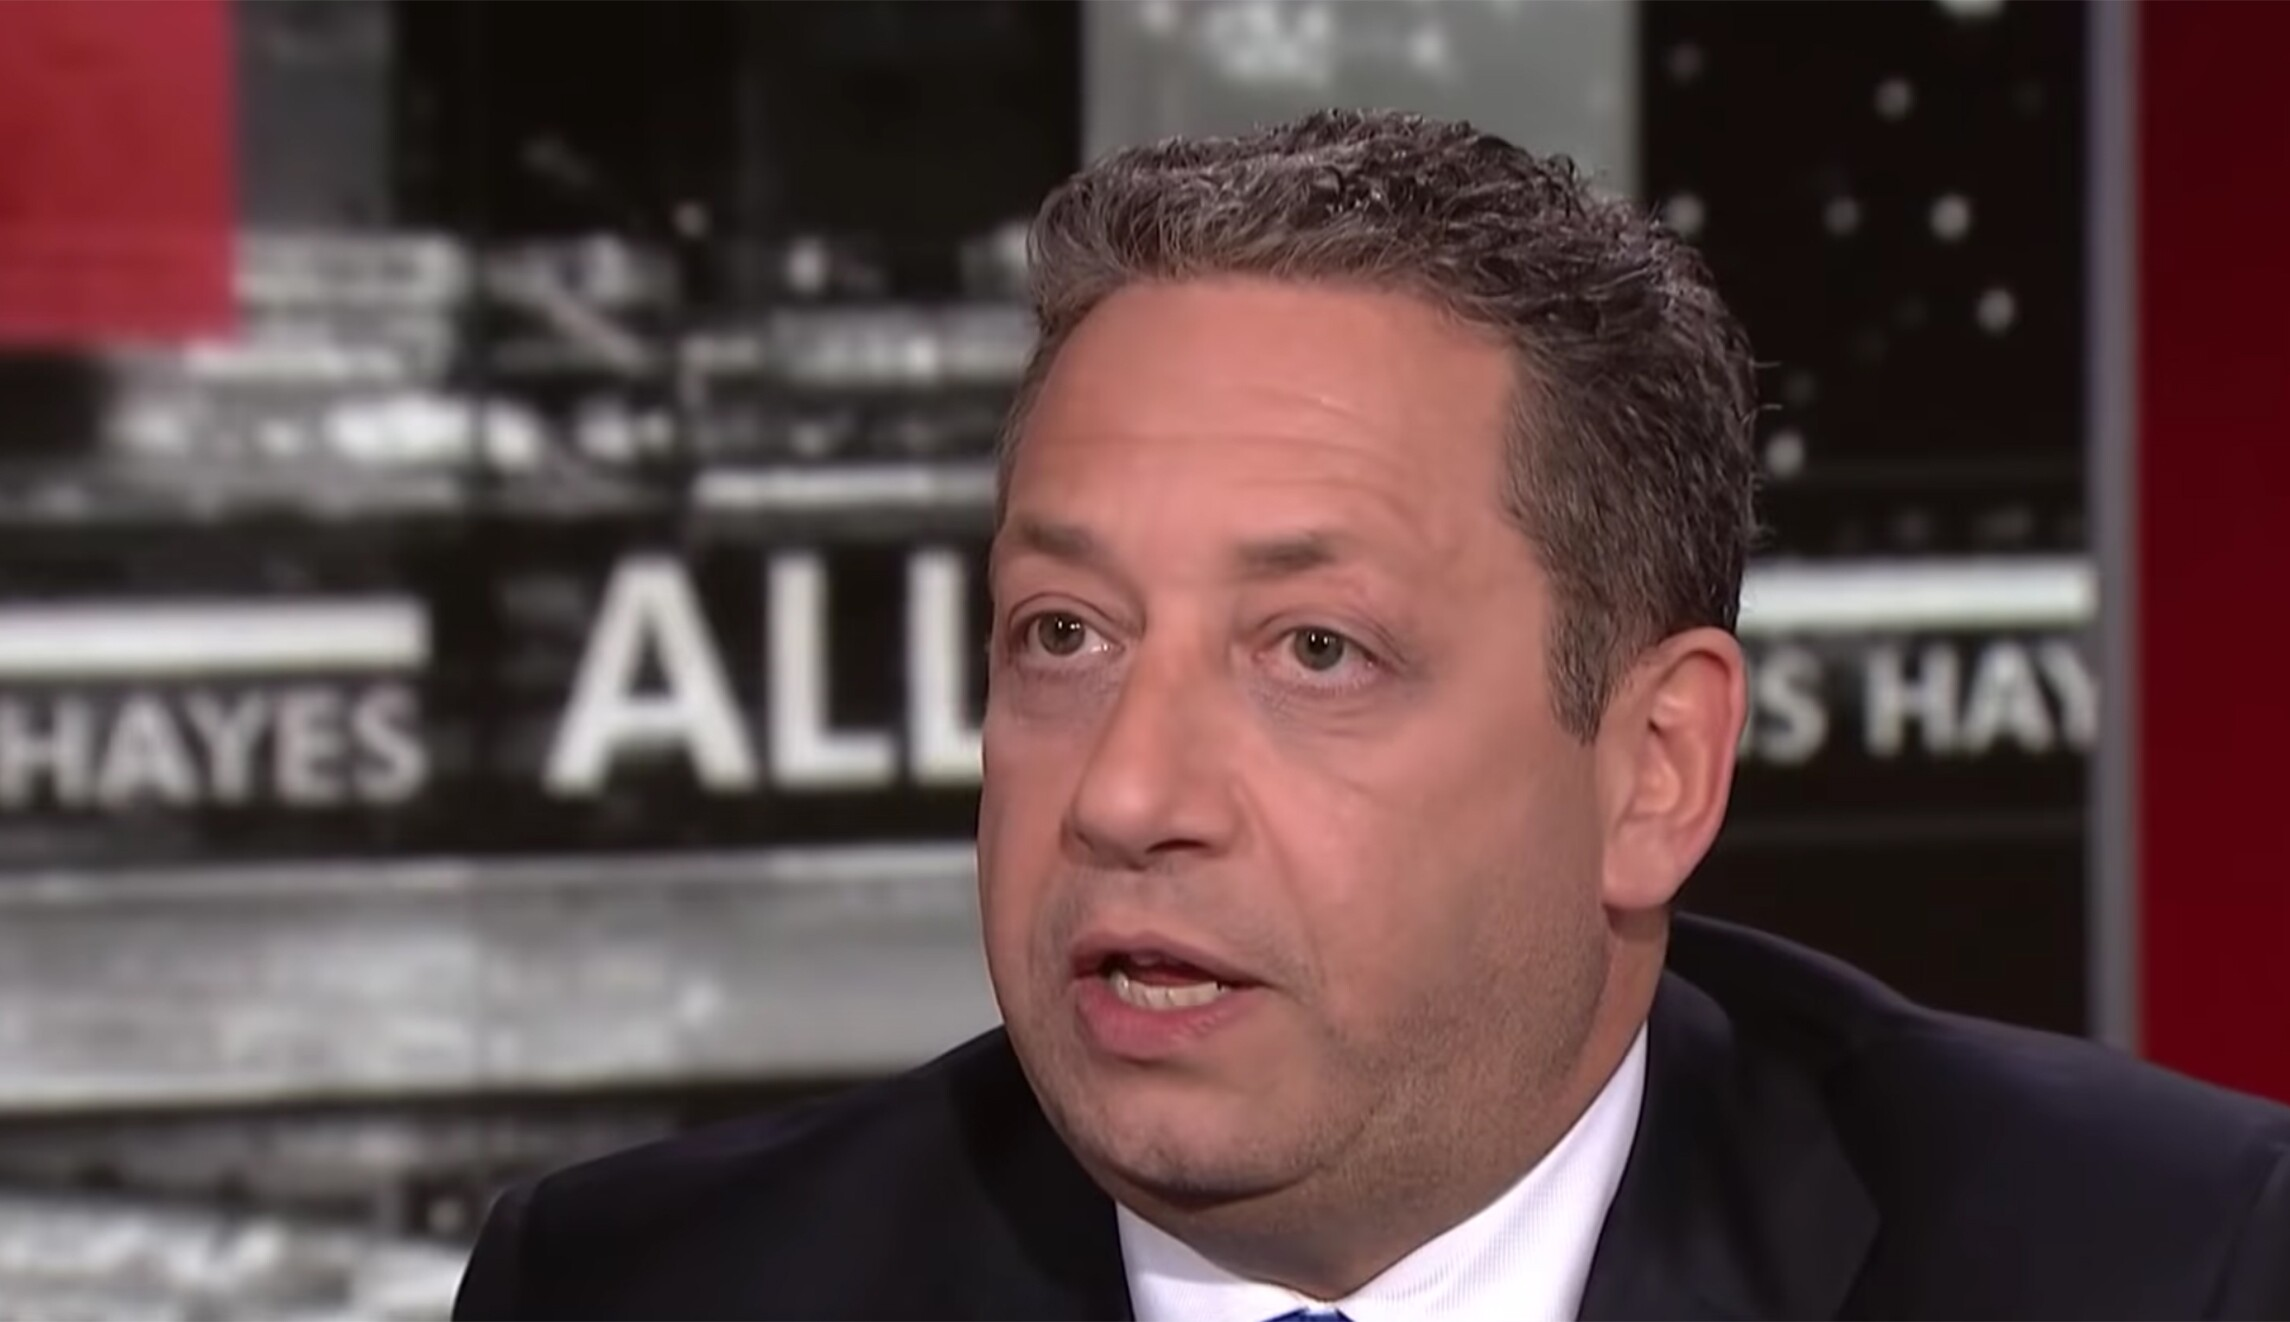 House Intel says Felix Sater refused to 'fully' cooperate and will remain under subpoena